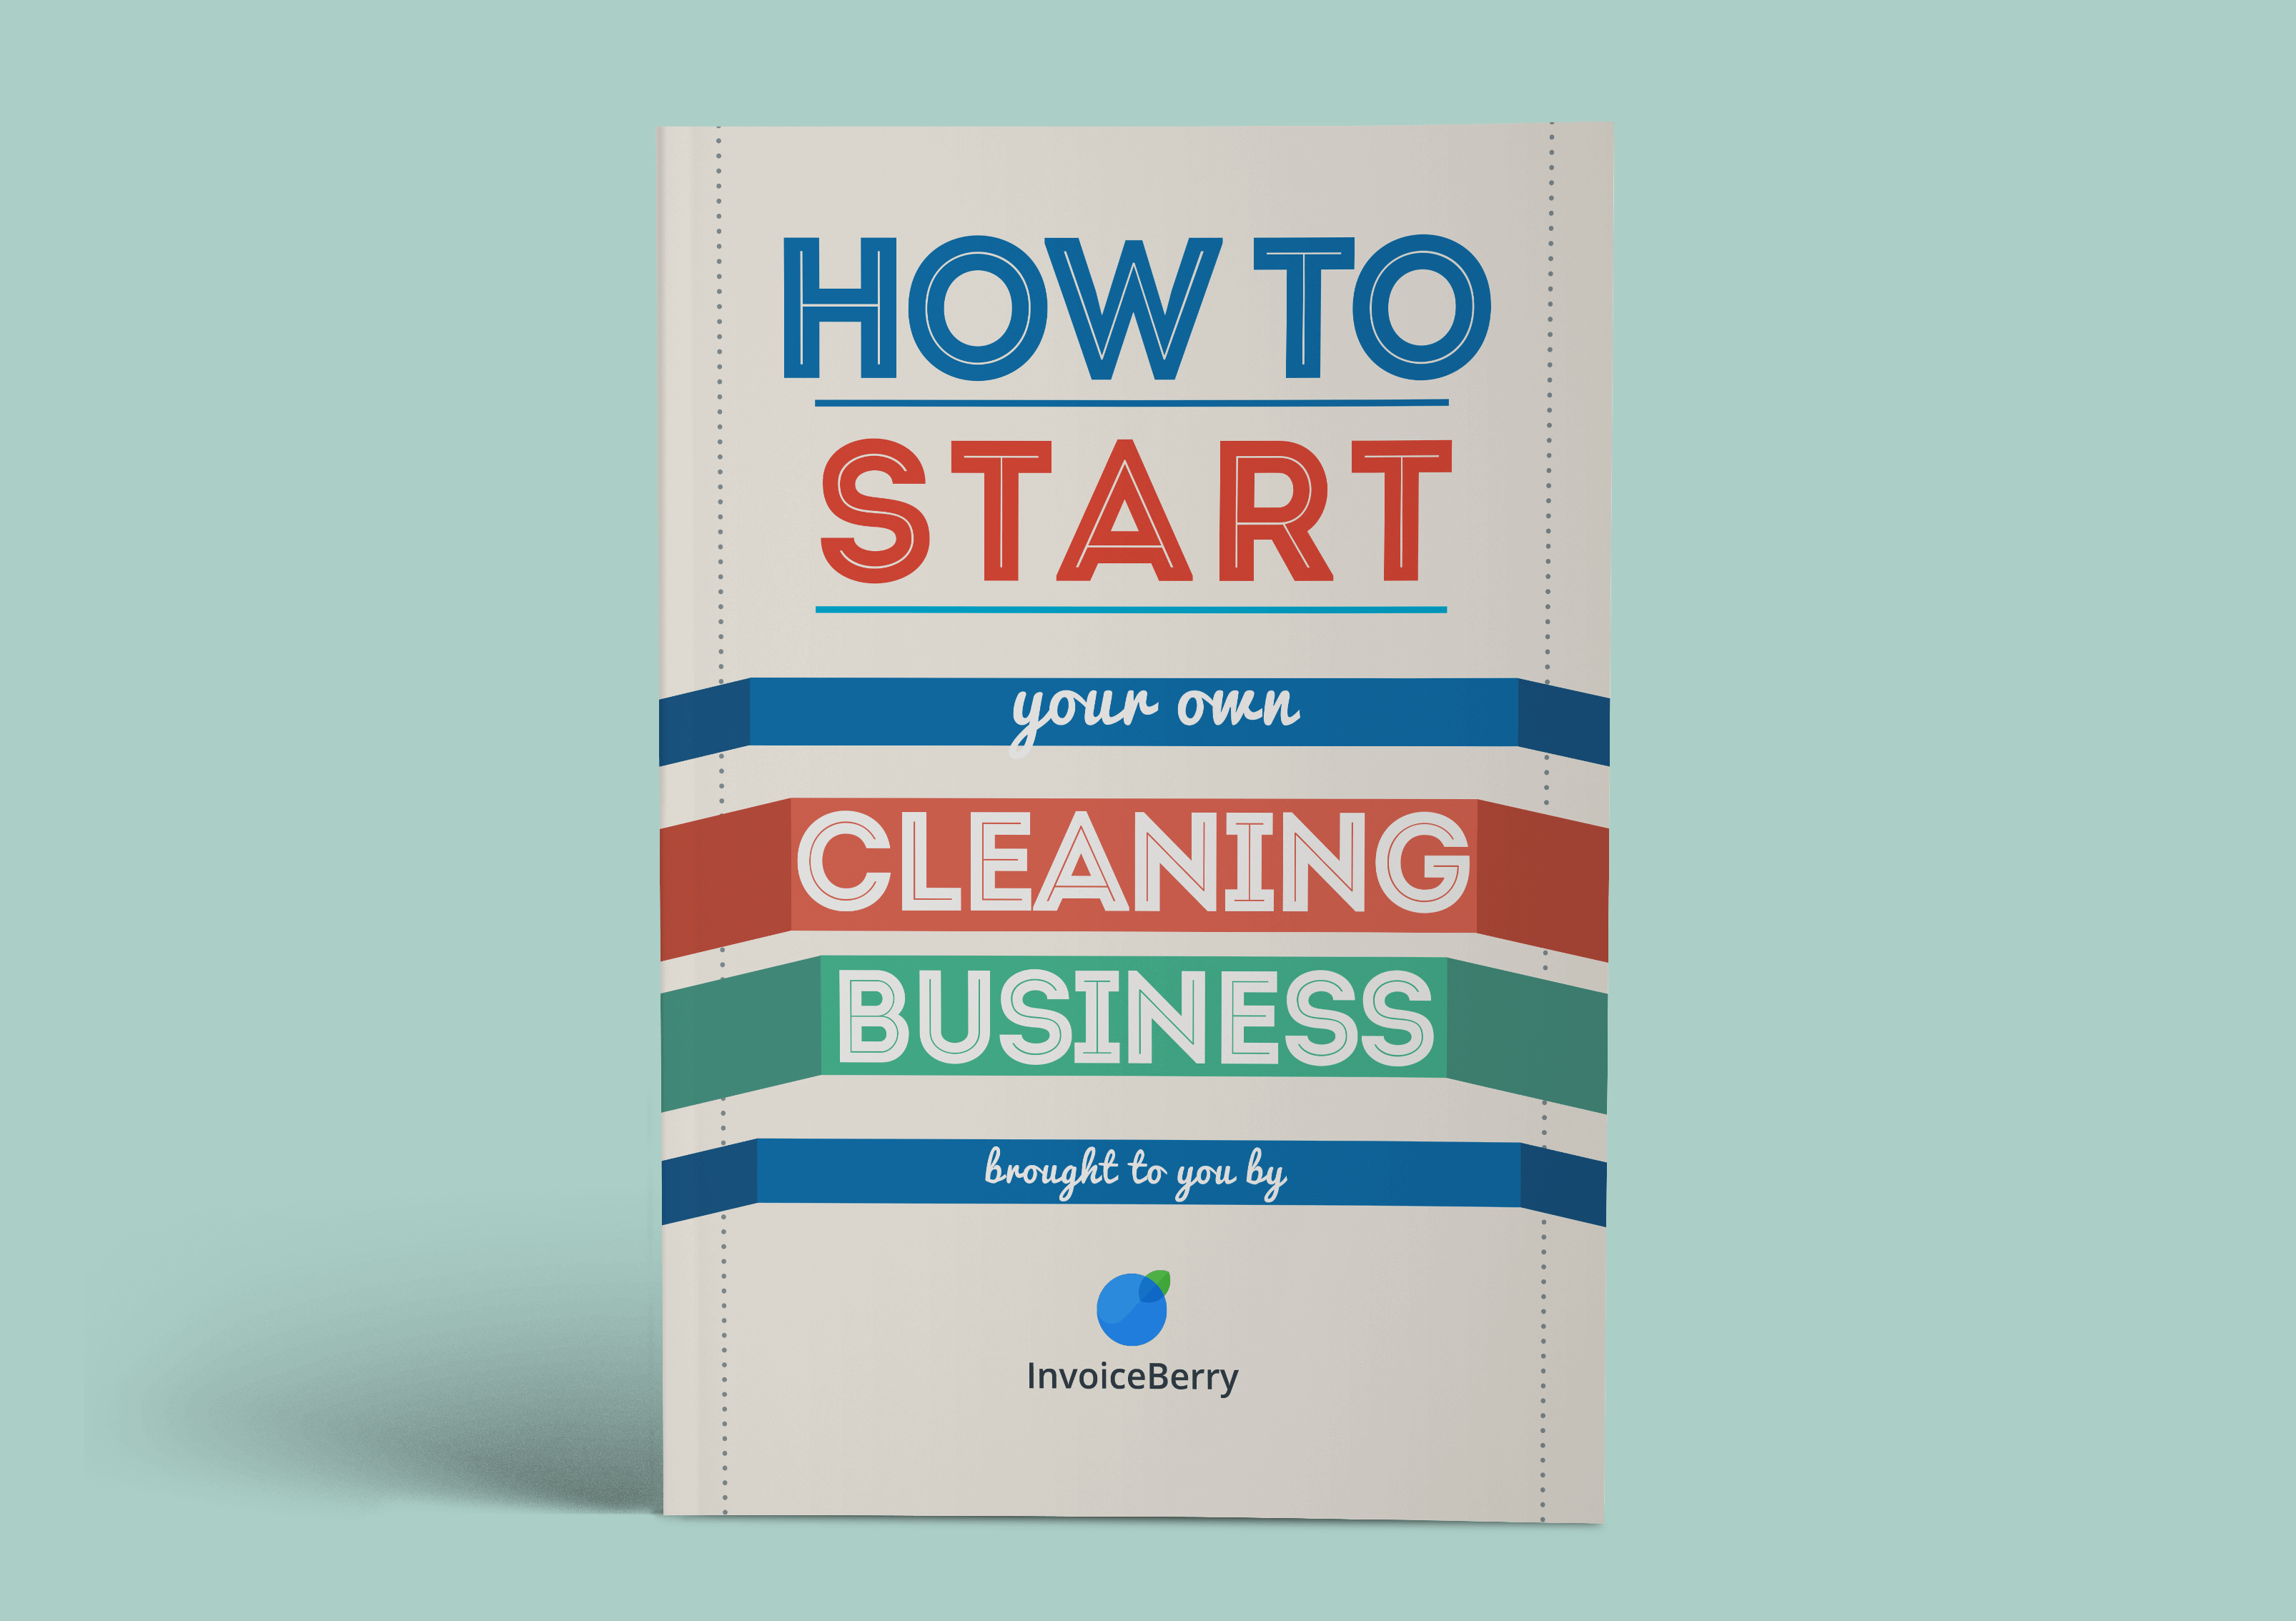 Our cleaning business ebook will help answer all your burning cleaning business questions